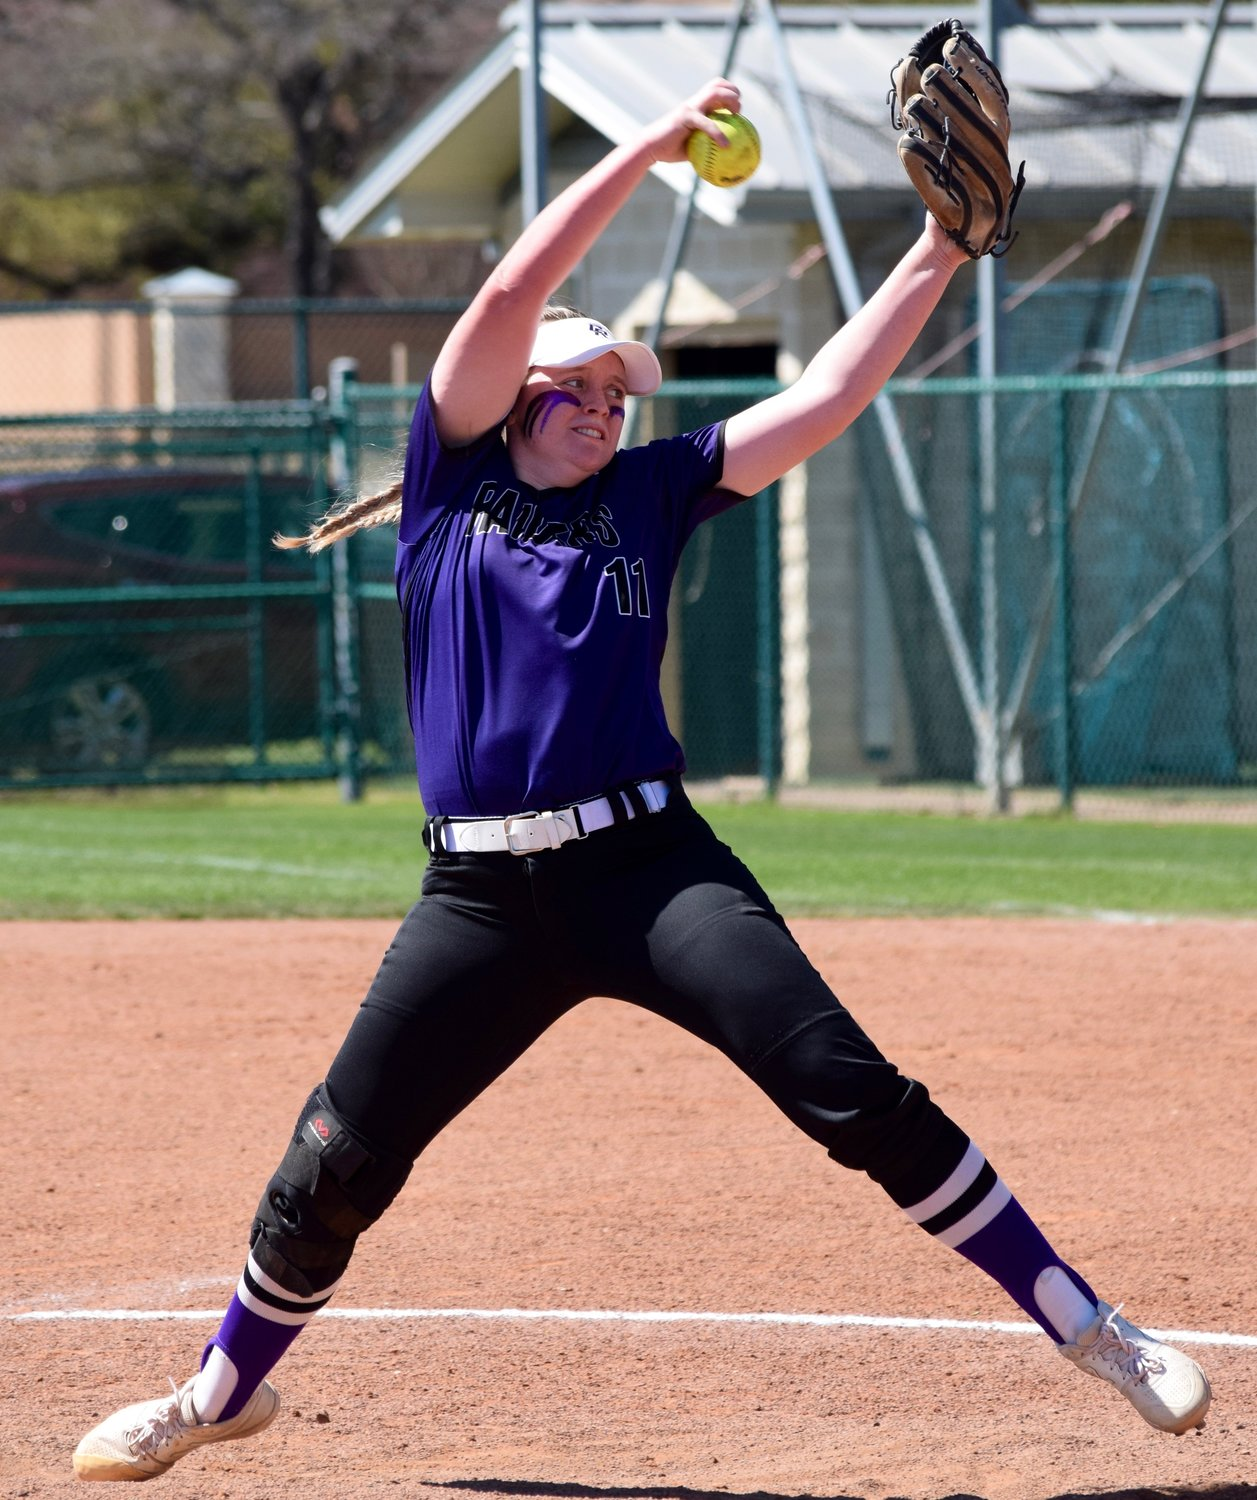 Cedar Ridge pitcher Tori McCann was the District 13-6A MVP as the Lady Raiders went undefeated during the regular season and made it to the third round of the playoffs.